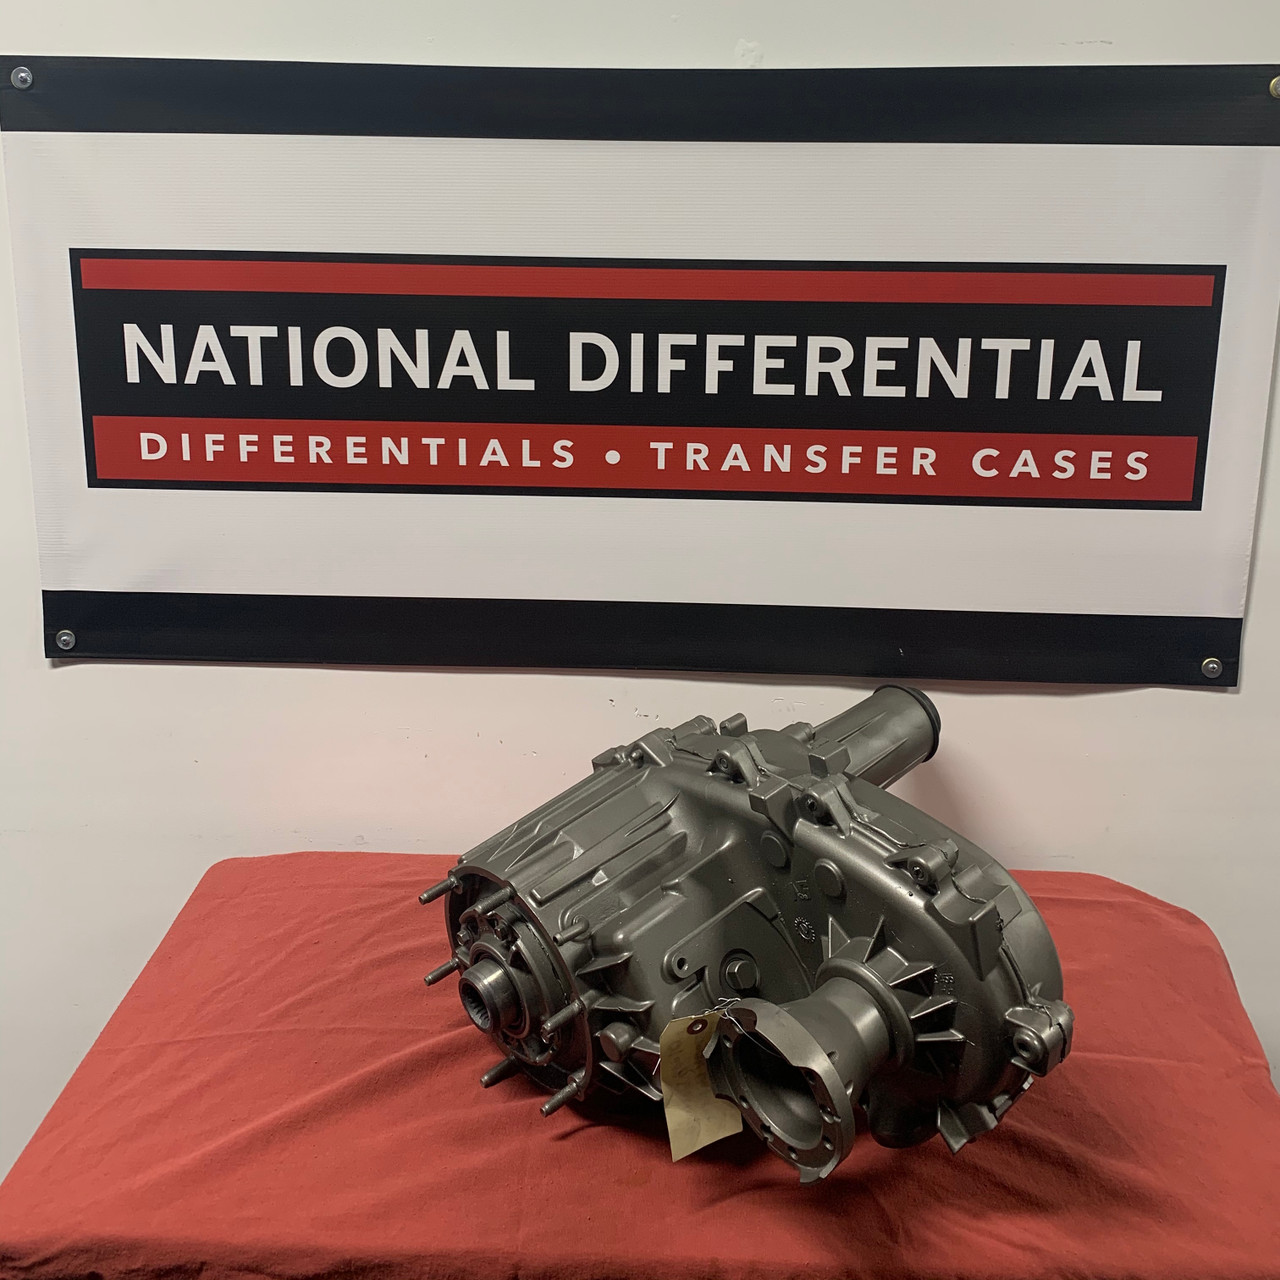 New Process NP 244 Transfer Case for 2001-2004 Dodge Dakota with Manual Shift.